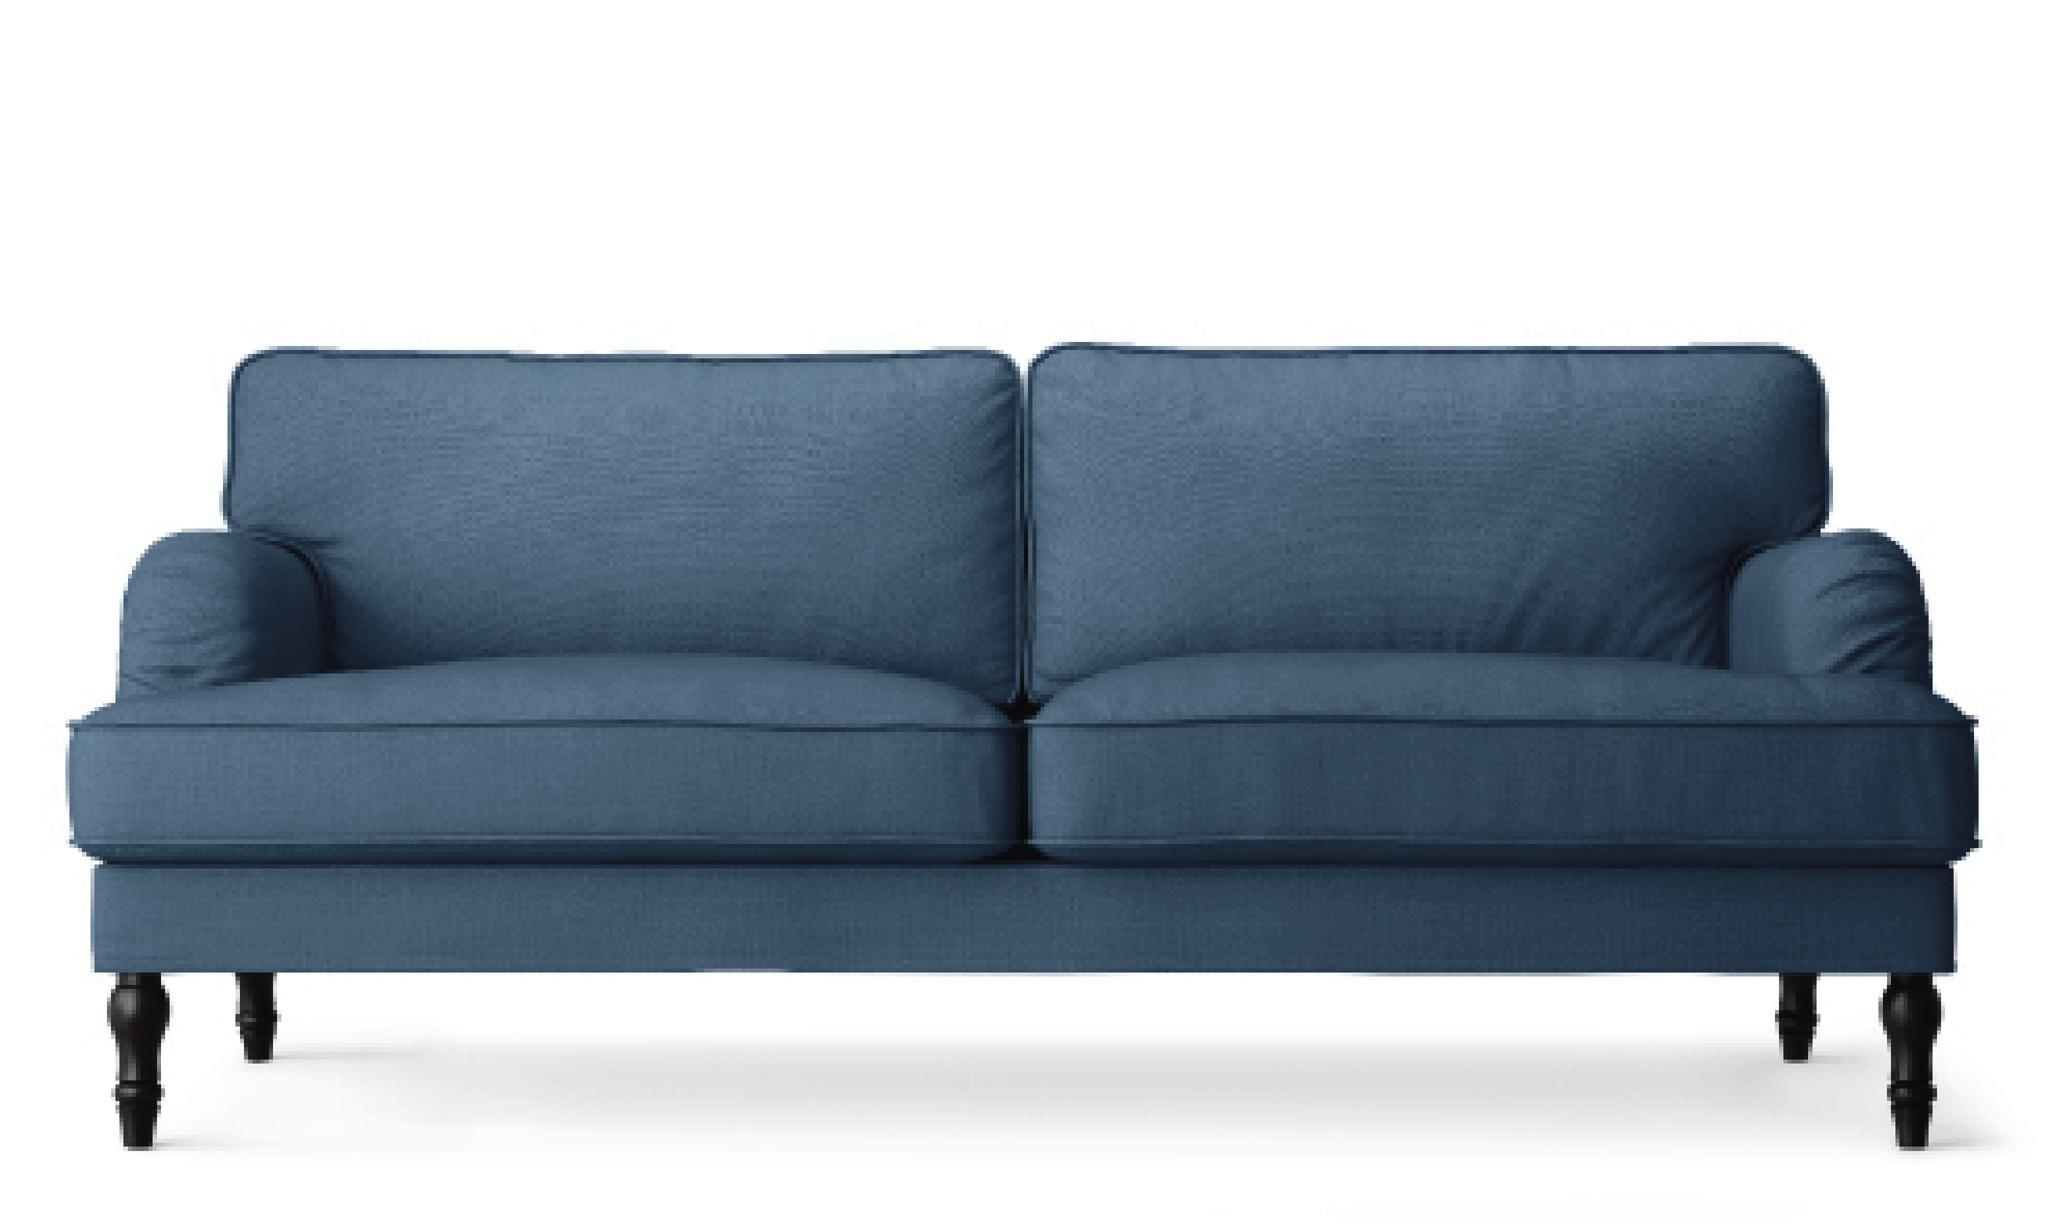 Fabric Sofas Ikea Ireland Dublin In Fabric Sofas (Image 5 of 15)